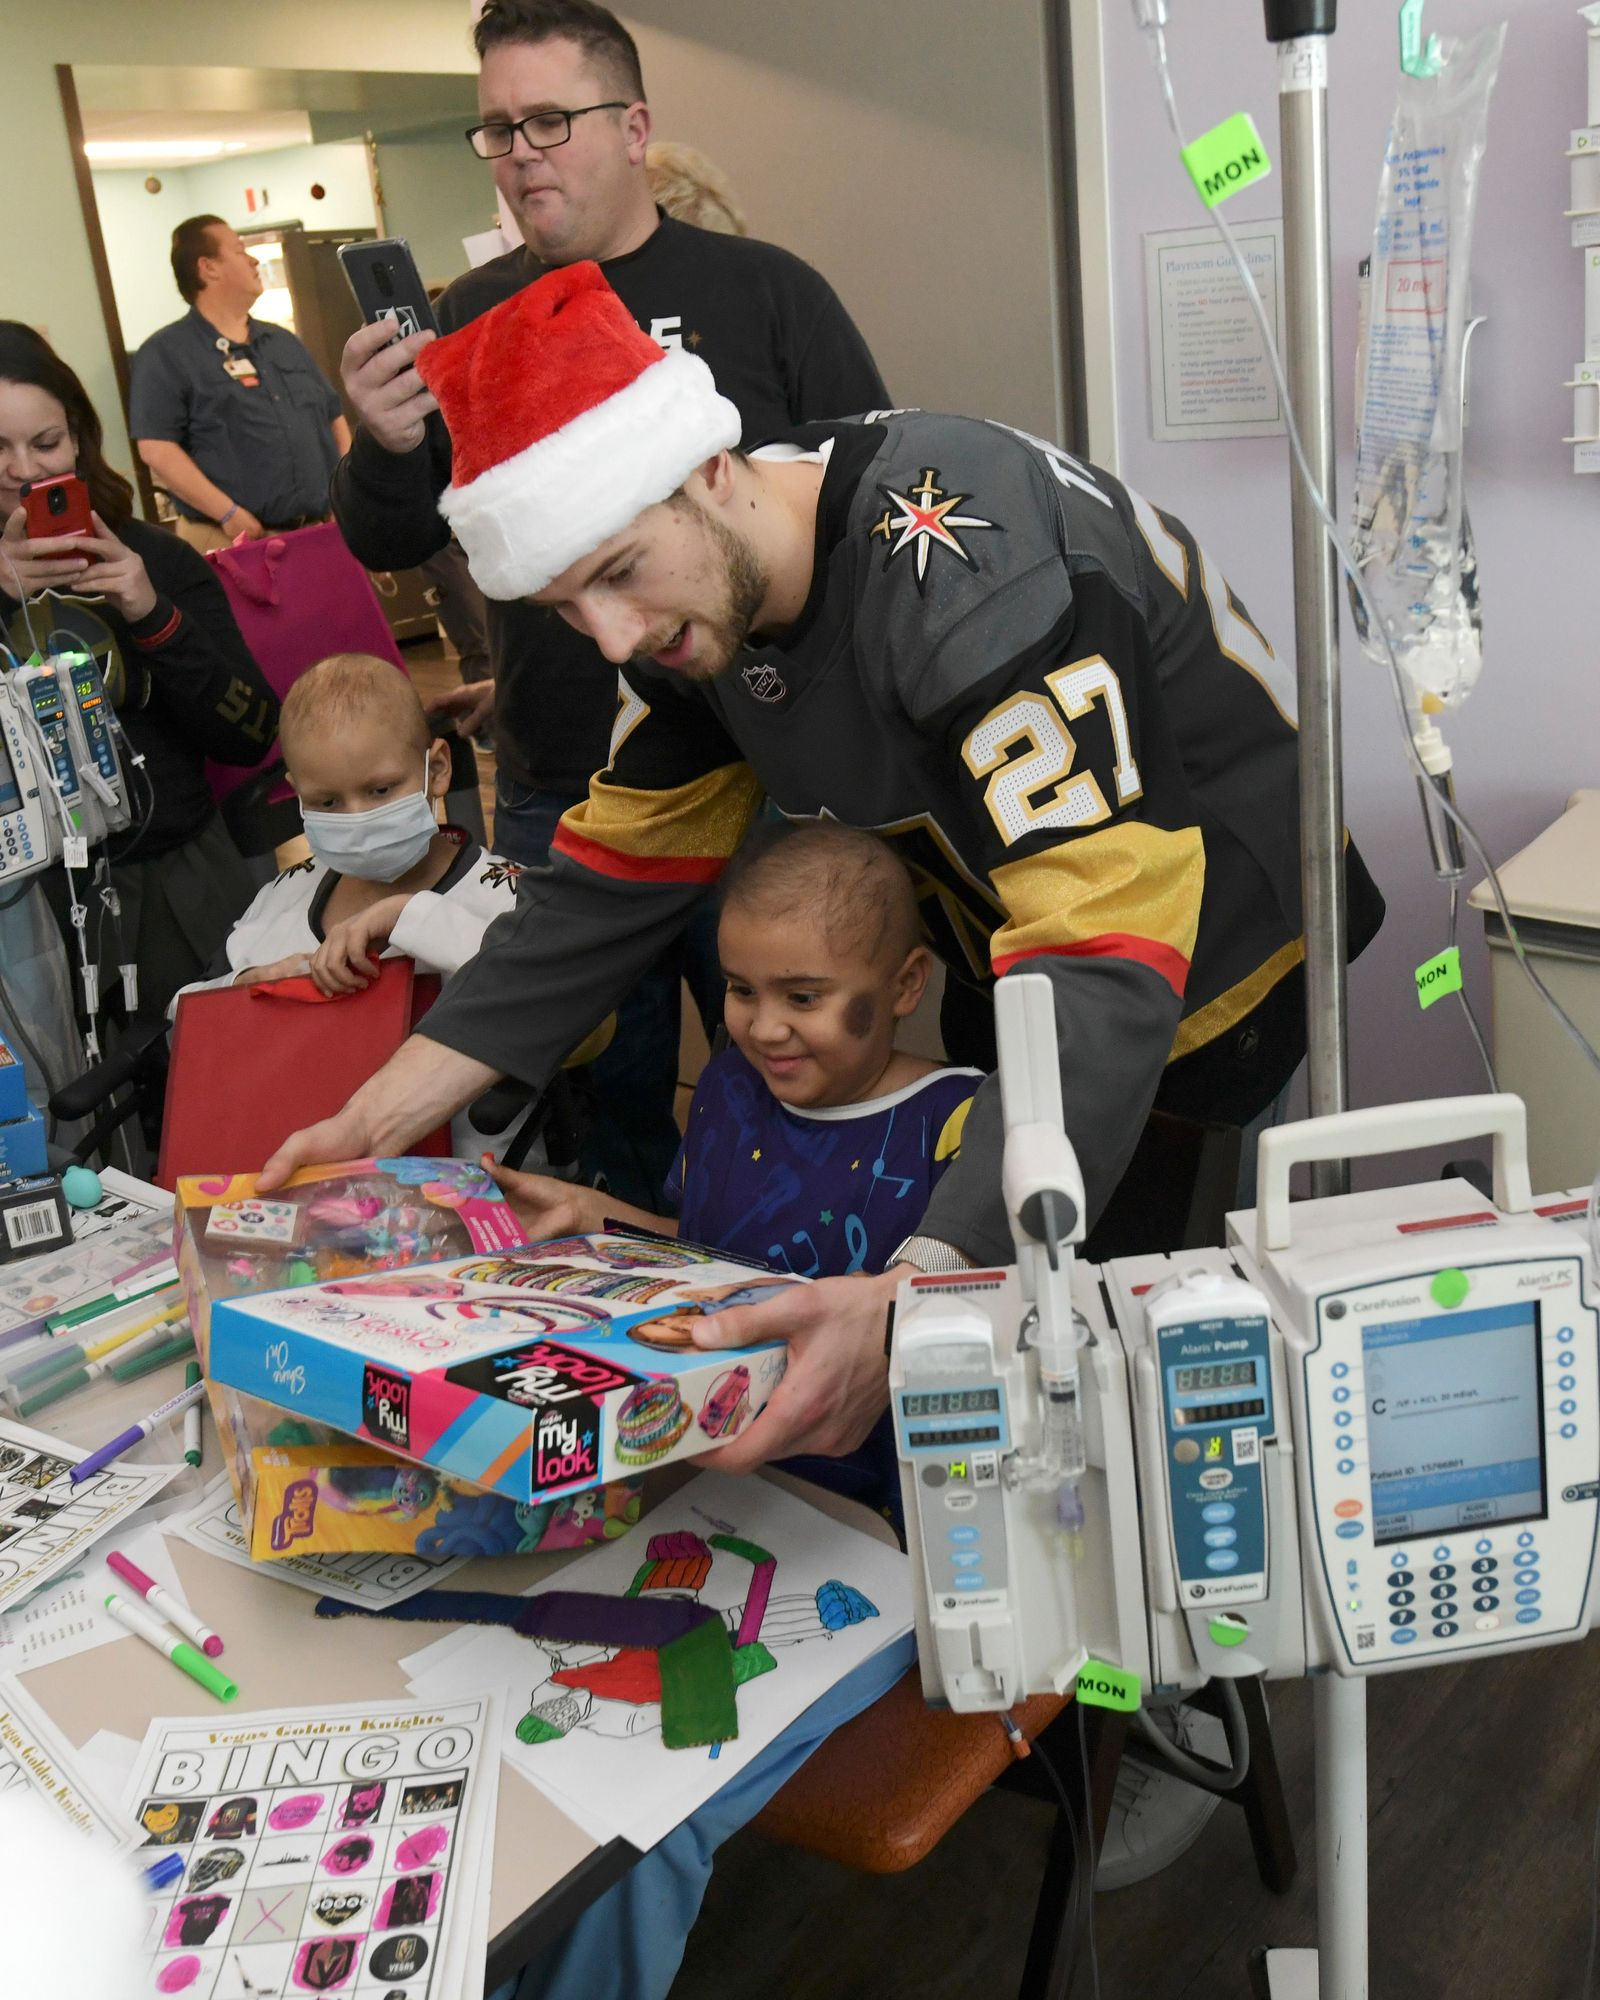 Vegas Golden Knights defenseman Shea Theodore gives presents to a young patient during a visit to Summerlin Hospital Friday, December 21, 2018. CREDIT: Sam Morris/Las Vegas News Bureau